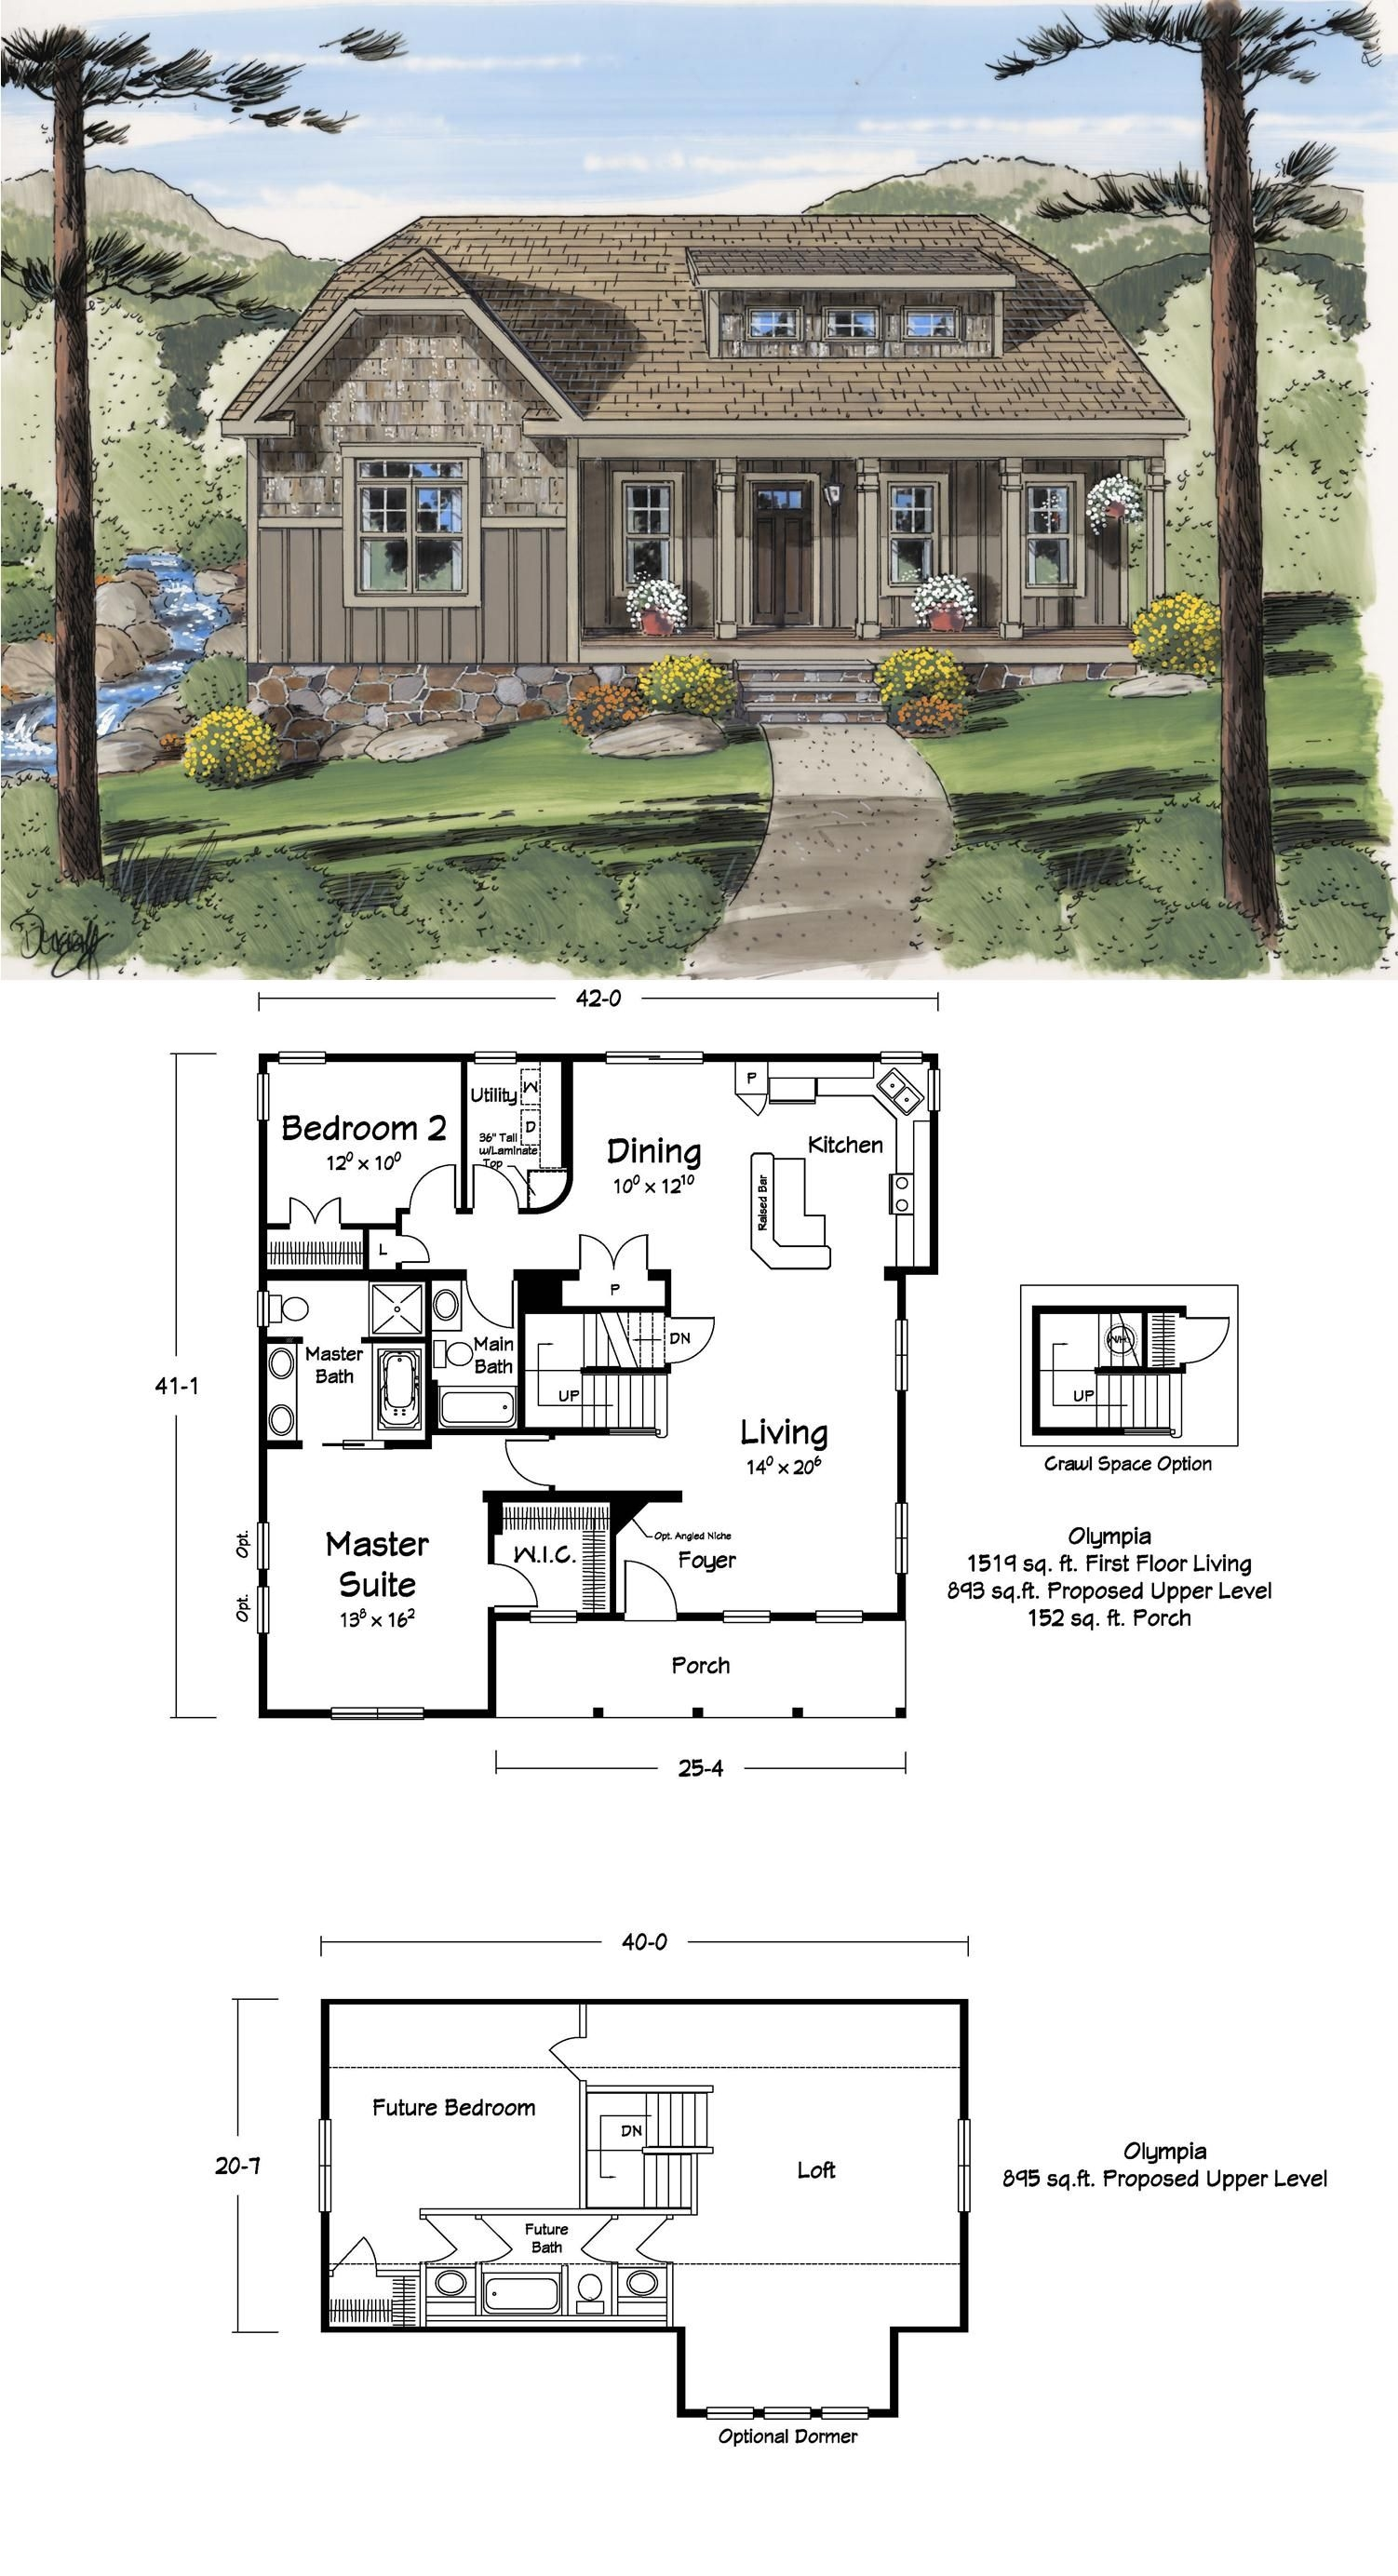 40+ Unique Rustic Mountain House Plans with Walkout Bat ... on rustic mountain home landscaping, log home plans, small rustic home plans, mountain retreat barn plans, contemporary mountain floor plans, 2 story ranch house plans, vacation home plans, rustic home decor, modern craftsman house plans, rustic multi-family dwelling floor plan, rustic mountain home designs, mountain house plans, rustic mountain home architecture, rustic house plans, small house plans, georgia low country house plans, rustic mountain home interiors, rustic mountain home kitchens, double story house plans, rustic mountain home lighting,